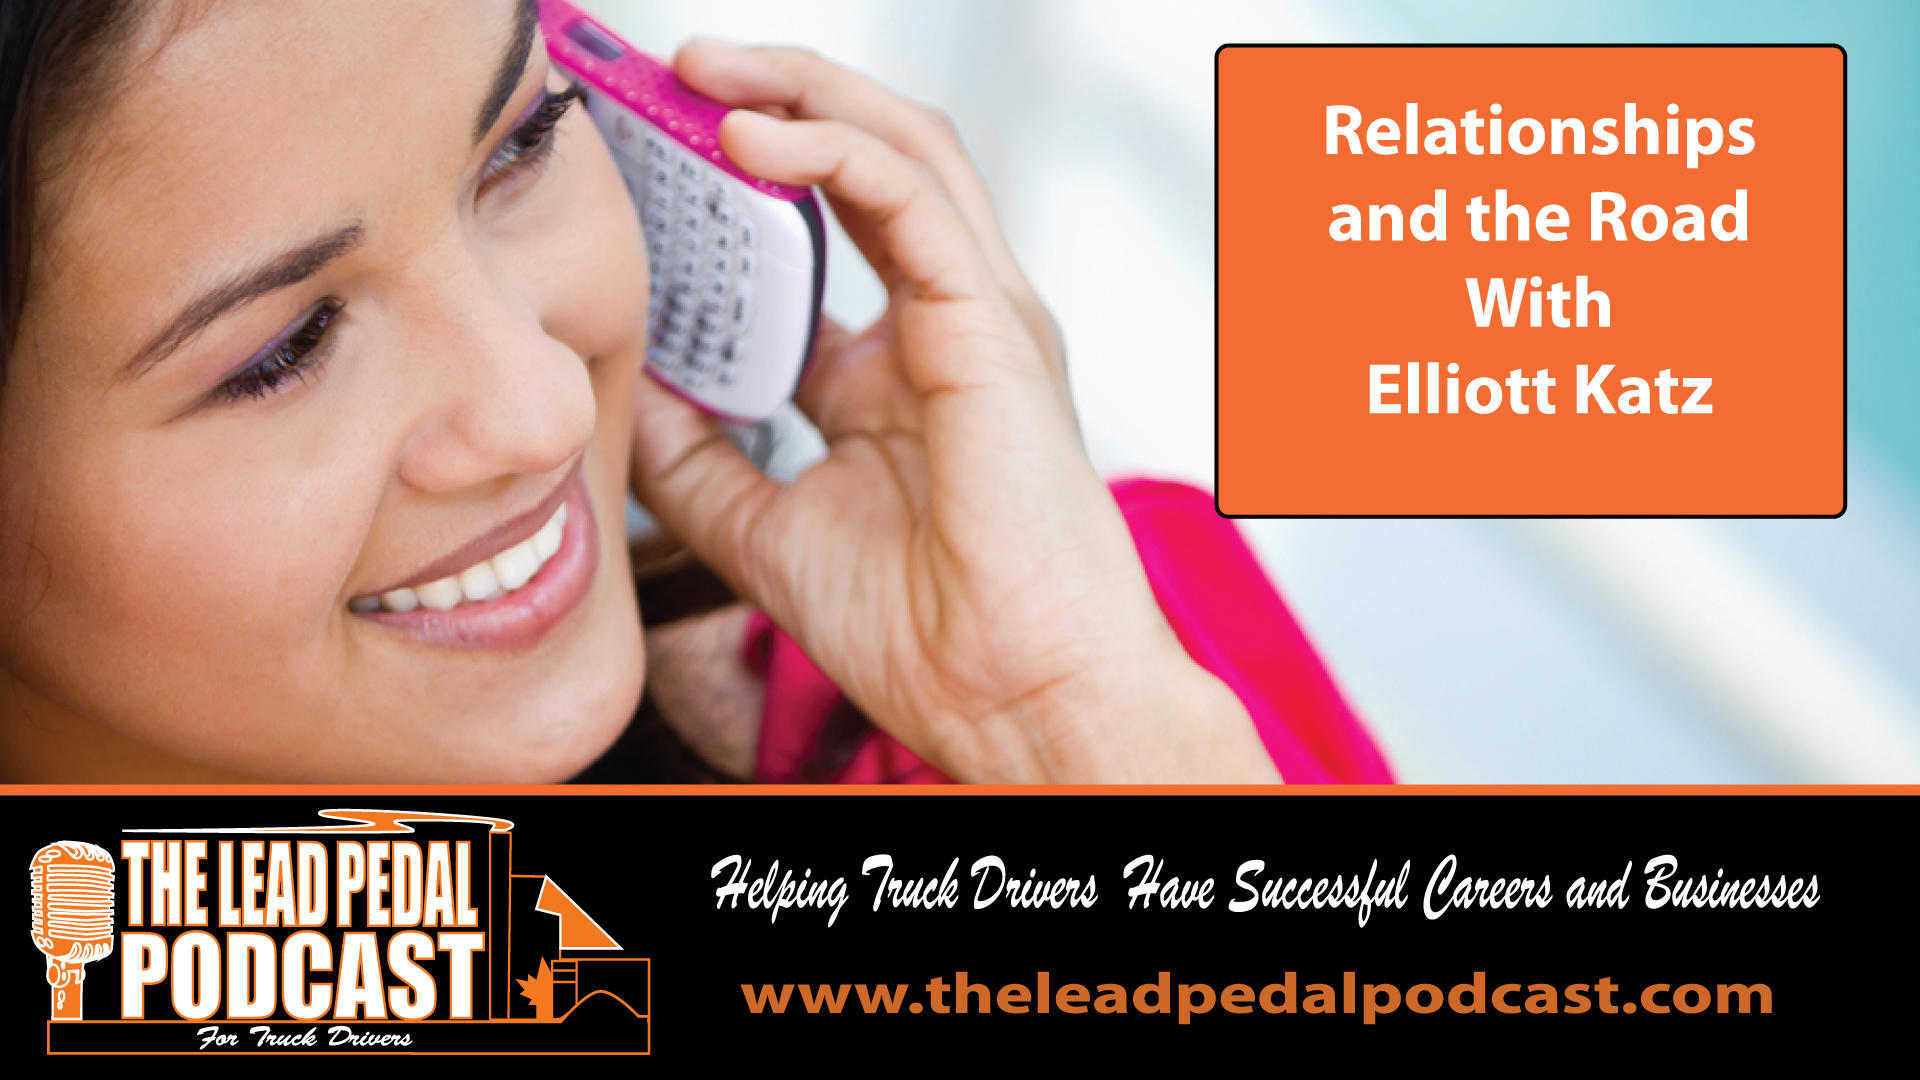 LP613 Relationships and the Road with Elliott Katz